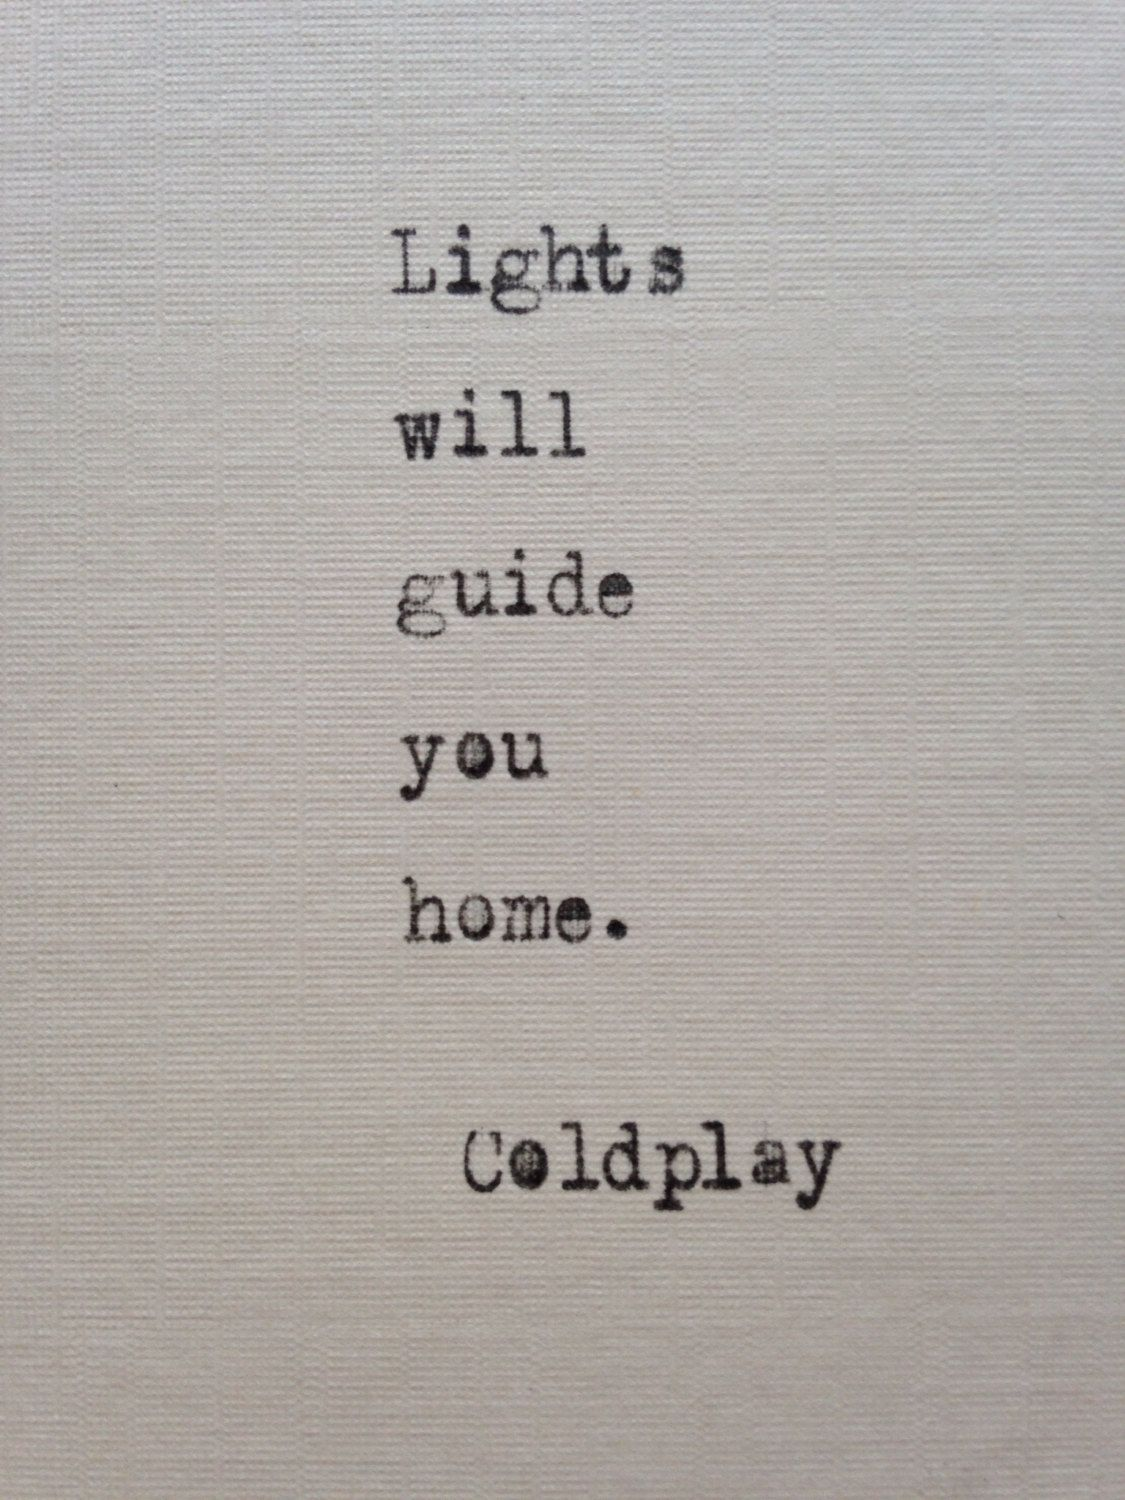 Coldplay Lyrics Typed On Typewriter Unique Gift Valentines Day Quotes For Husband Valentine S Day Quotes Valentine Quotes